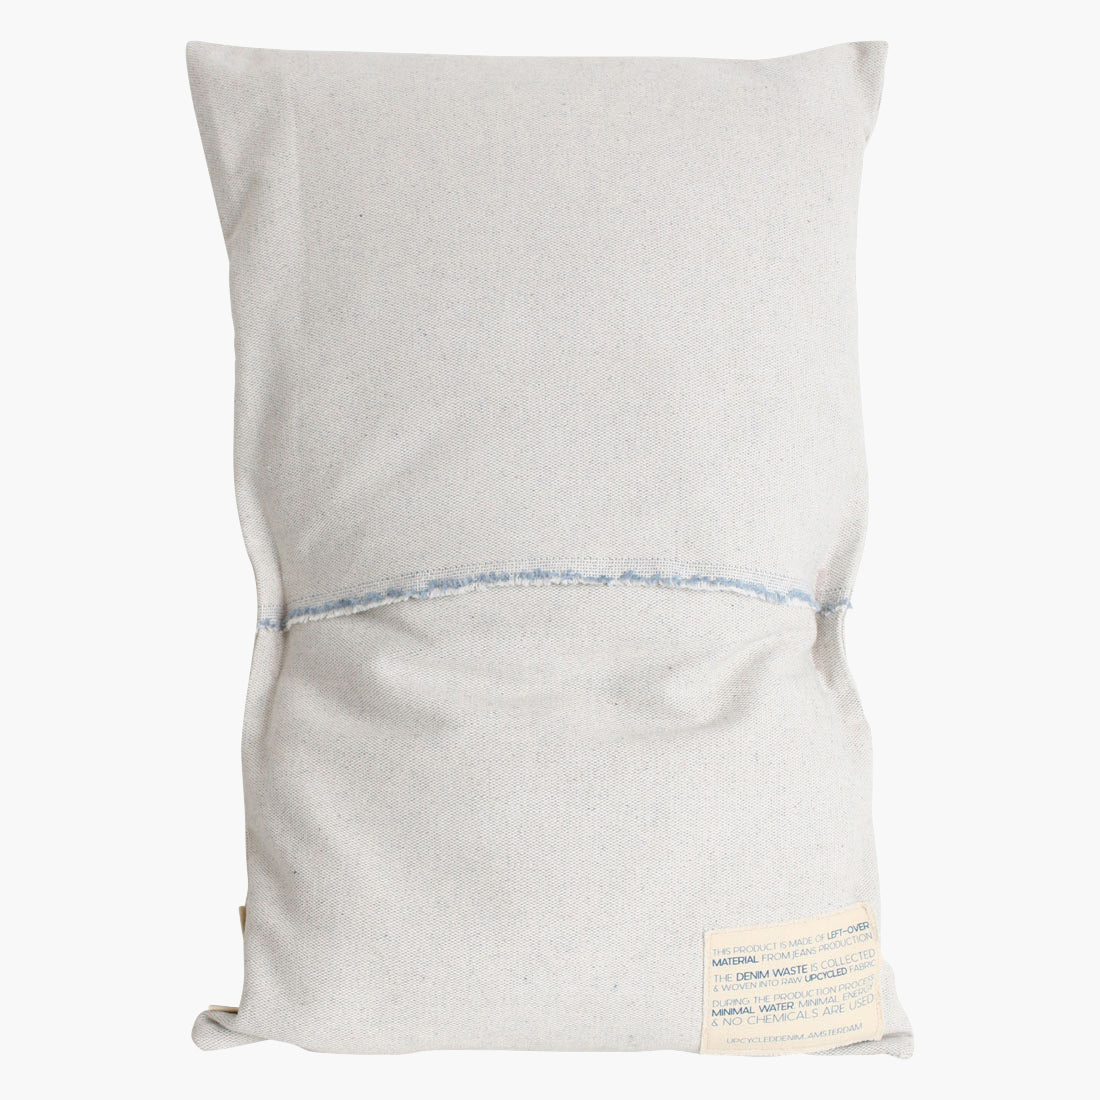 Cushion cover rectangular cream